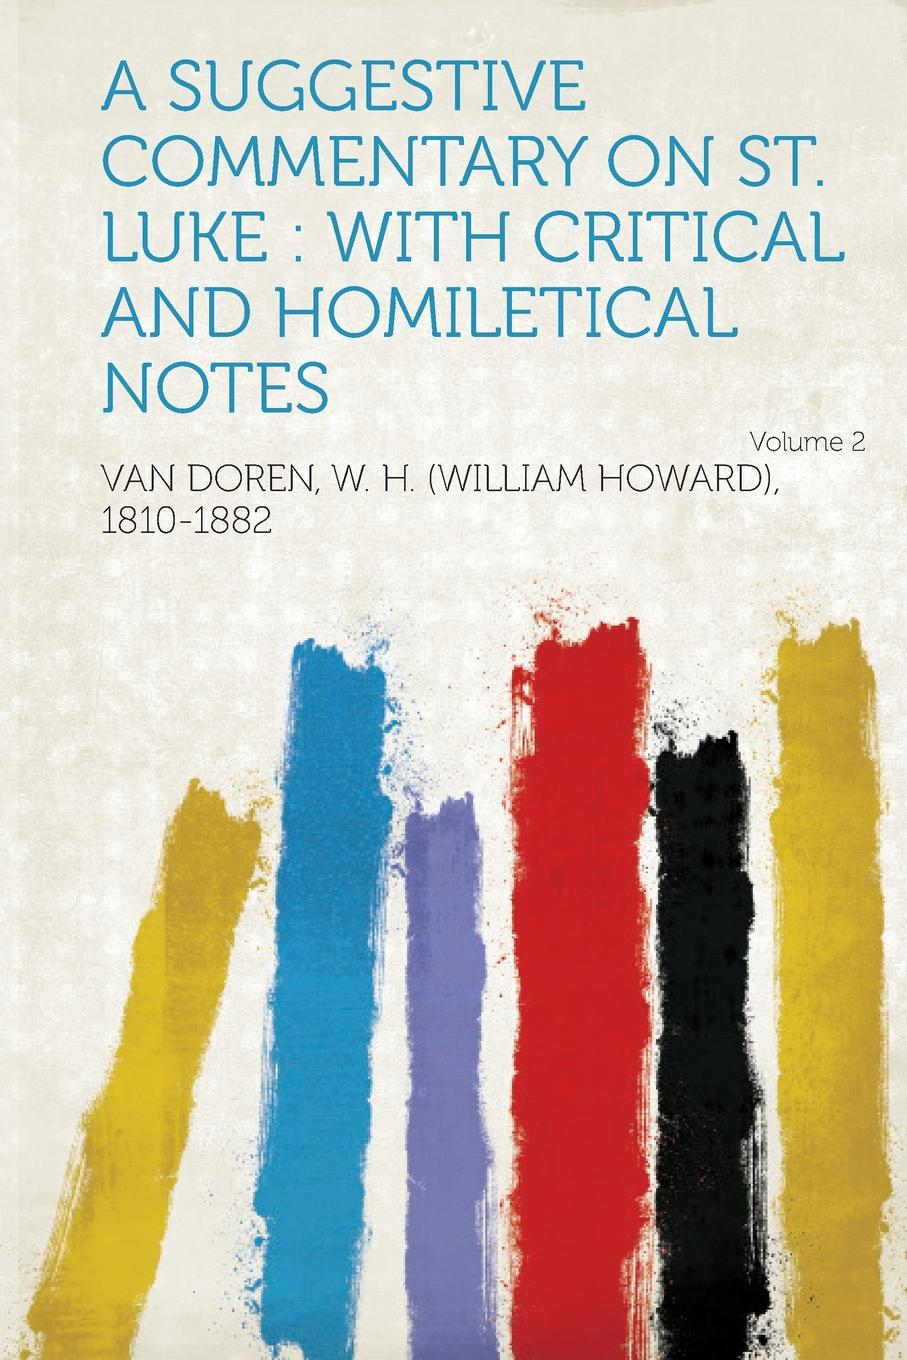 A Suggestive Commentary on St. Luke. With Critical and Homiletical Notes Volume 2